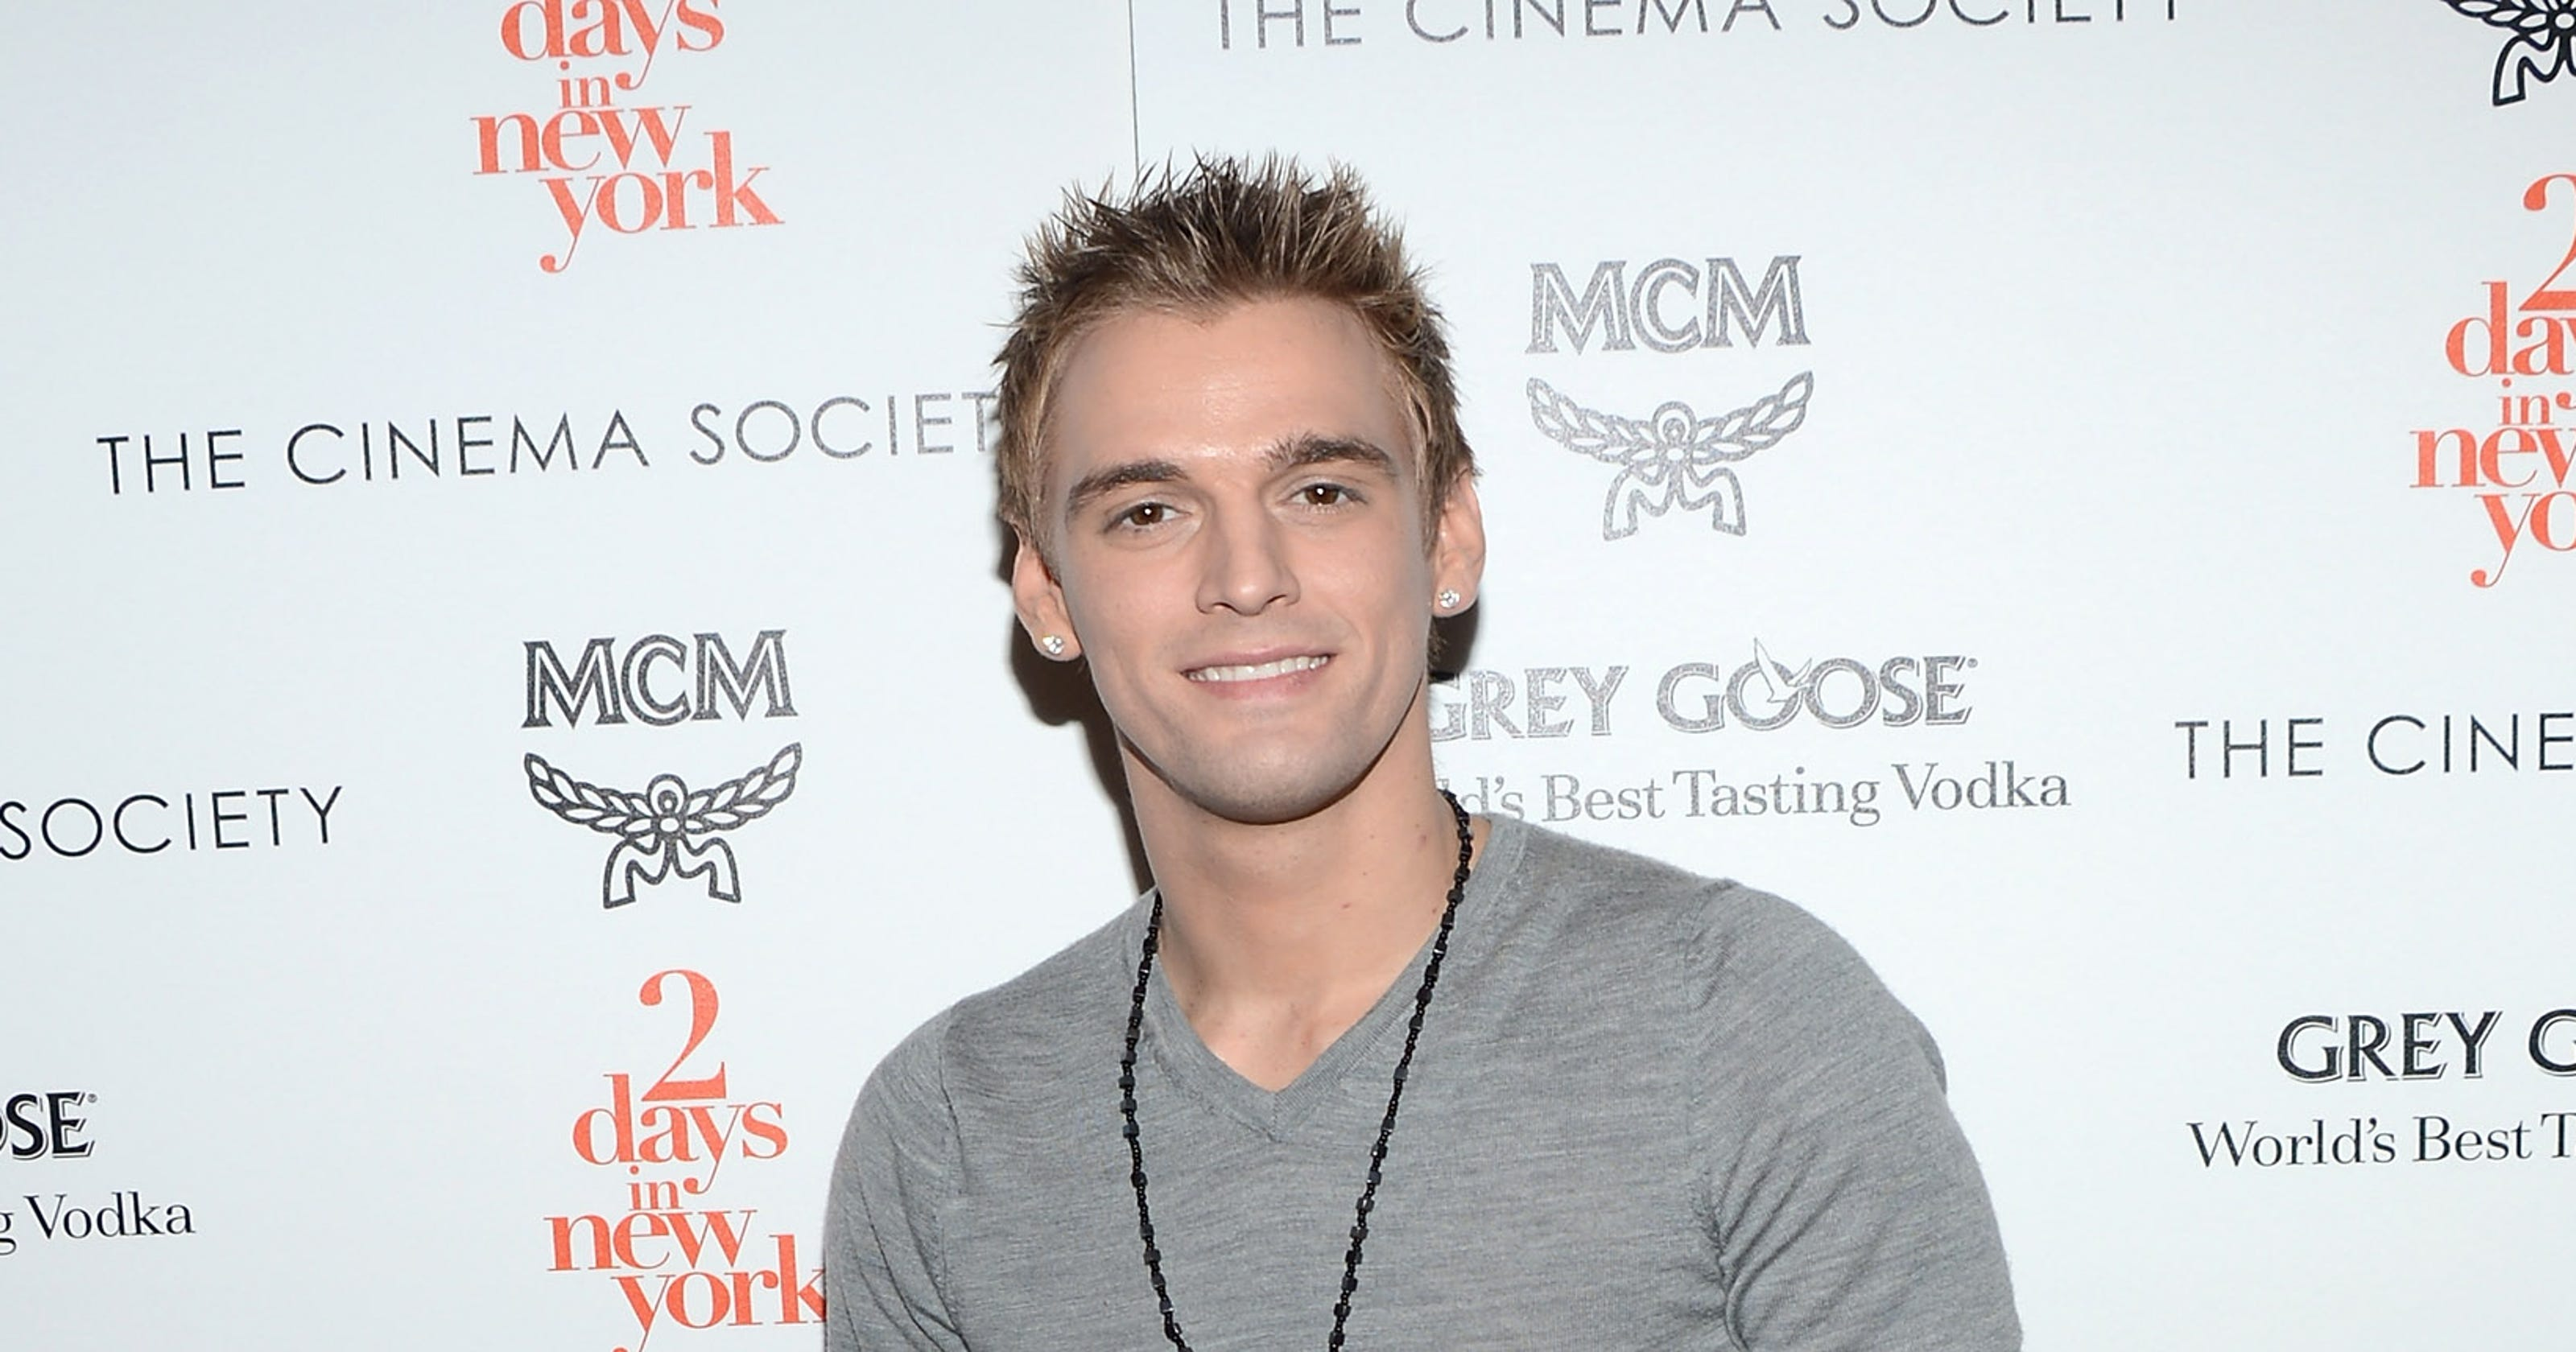 Aaron Carter To Perform In Asbury Park And Teaneck In January 2015